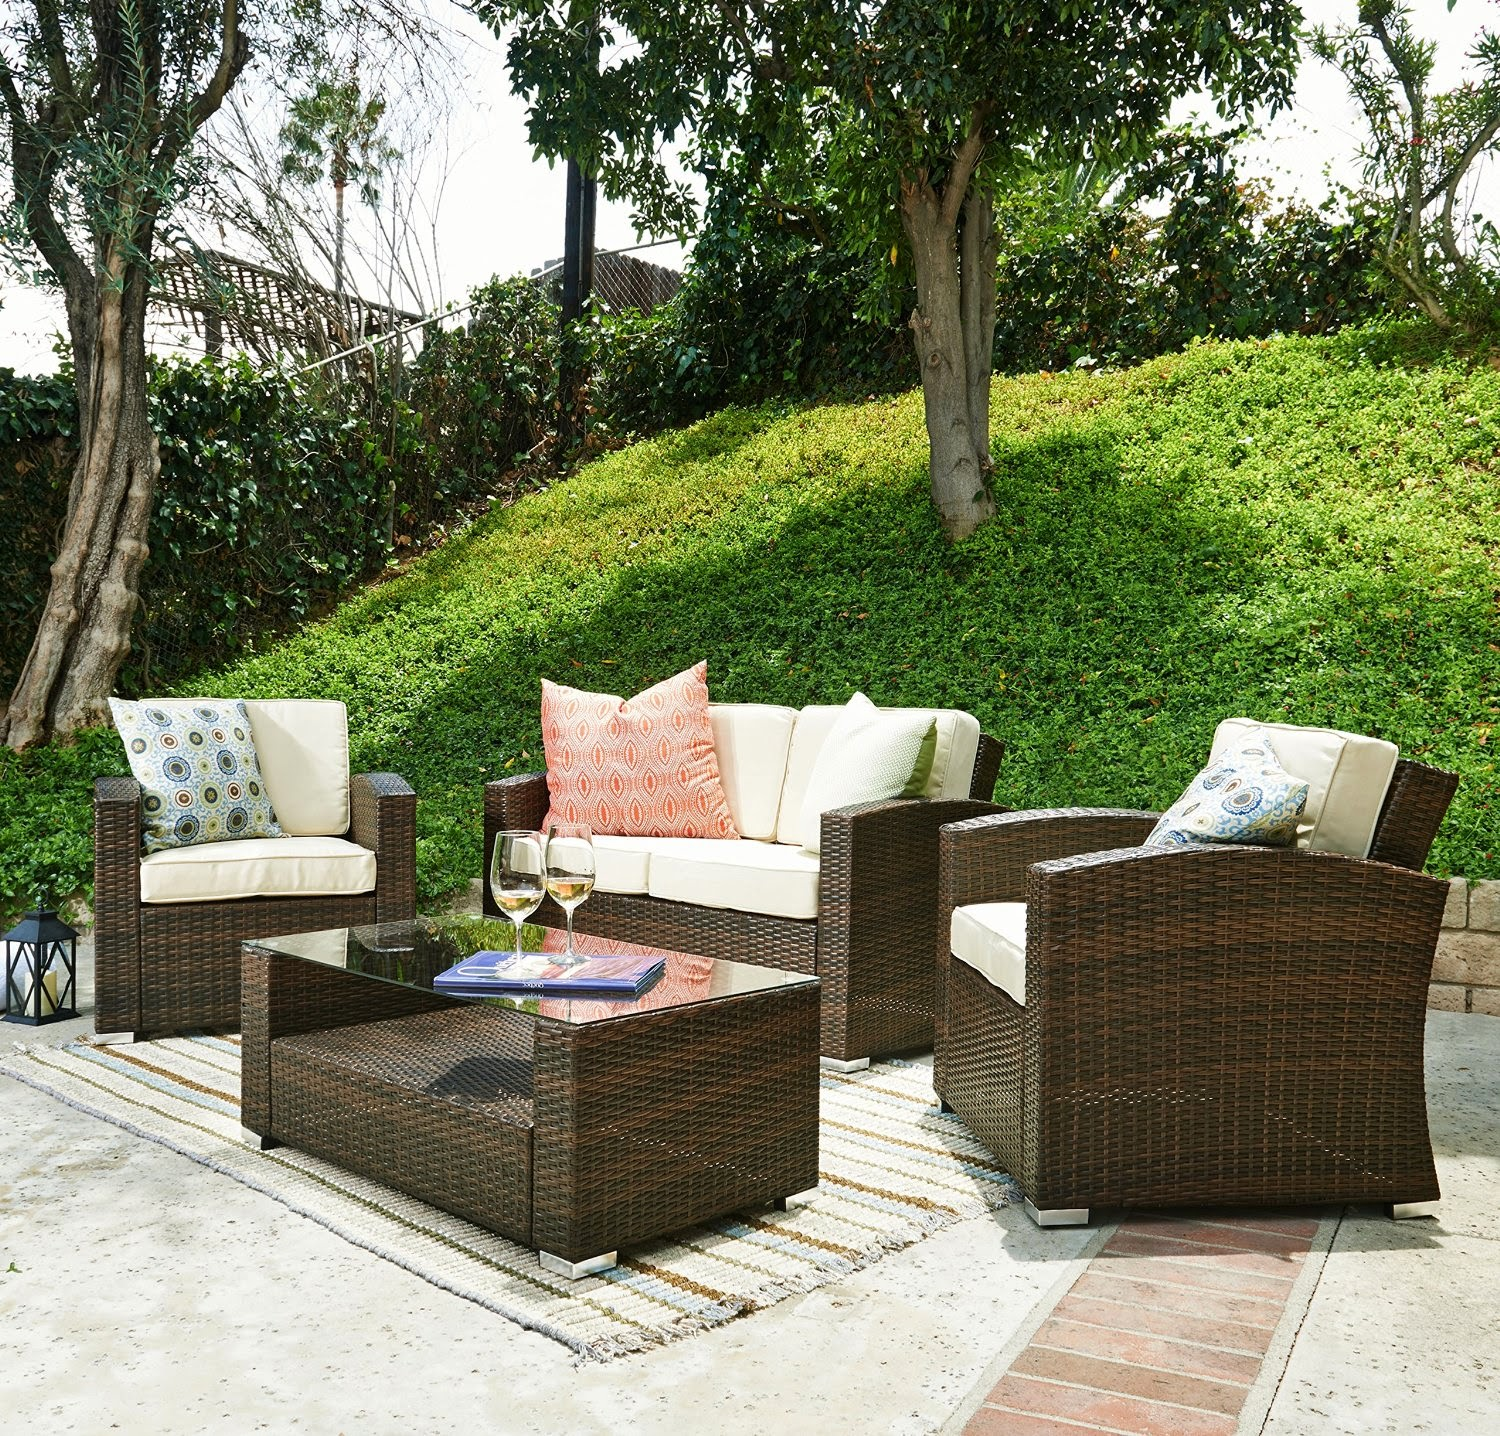 Discount Special Sale off 58% for Outdoor Furniture Sofa ...